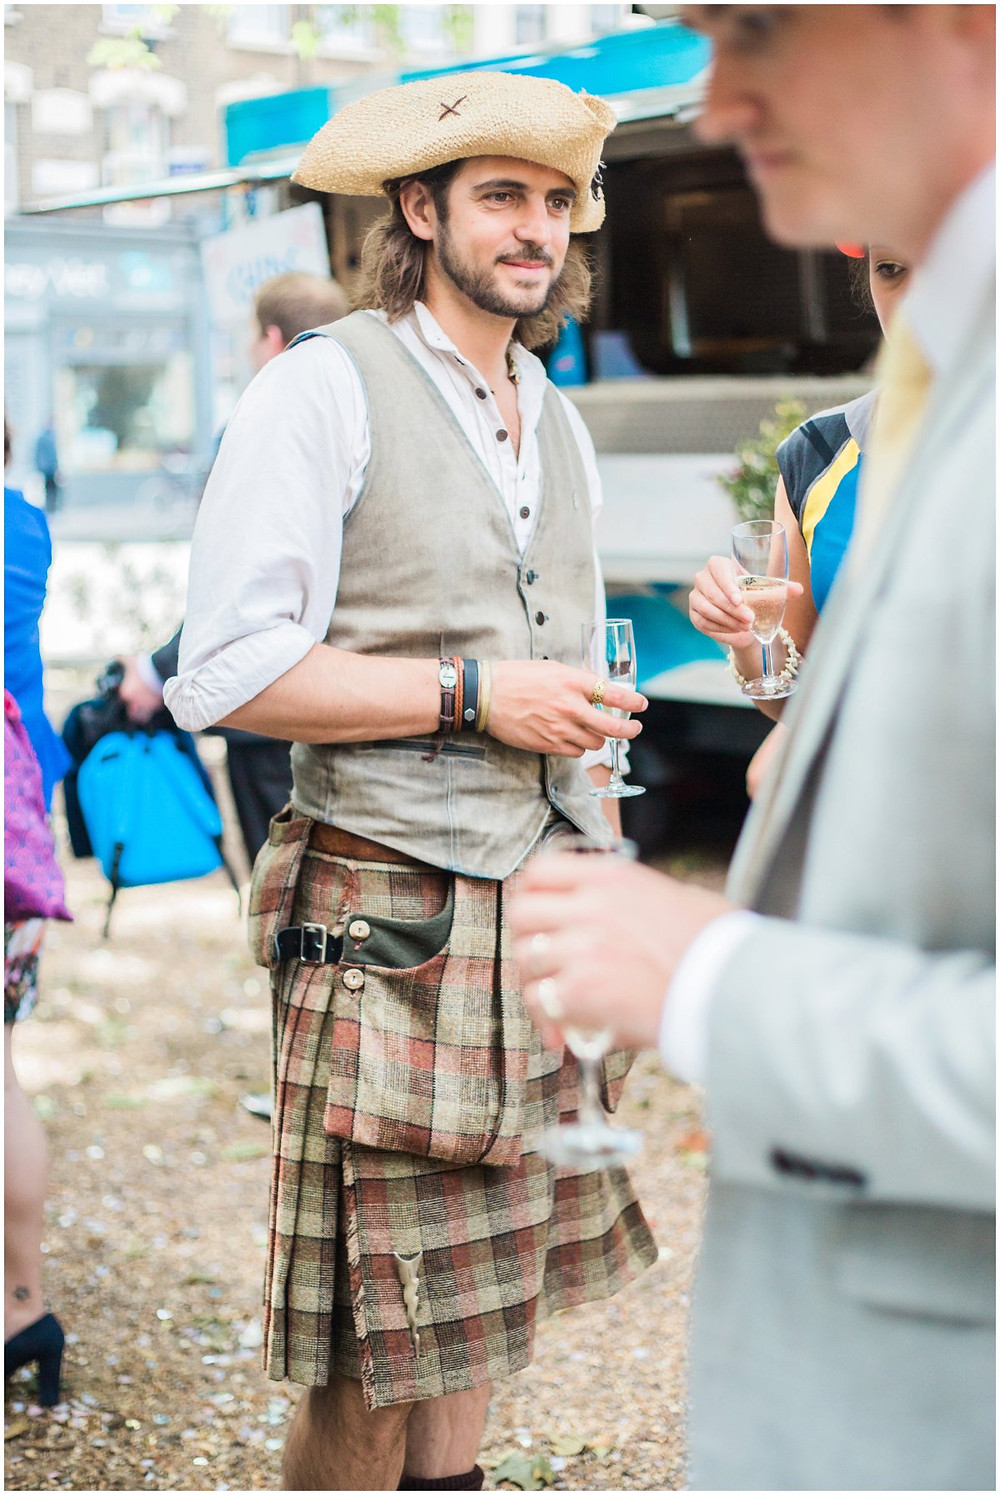 guest dressed in a kilt at a wedding